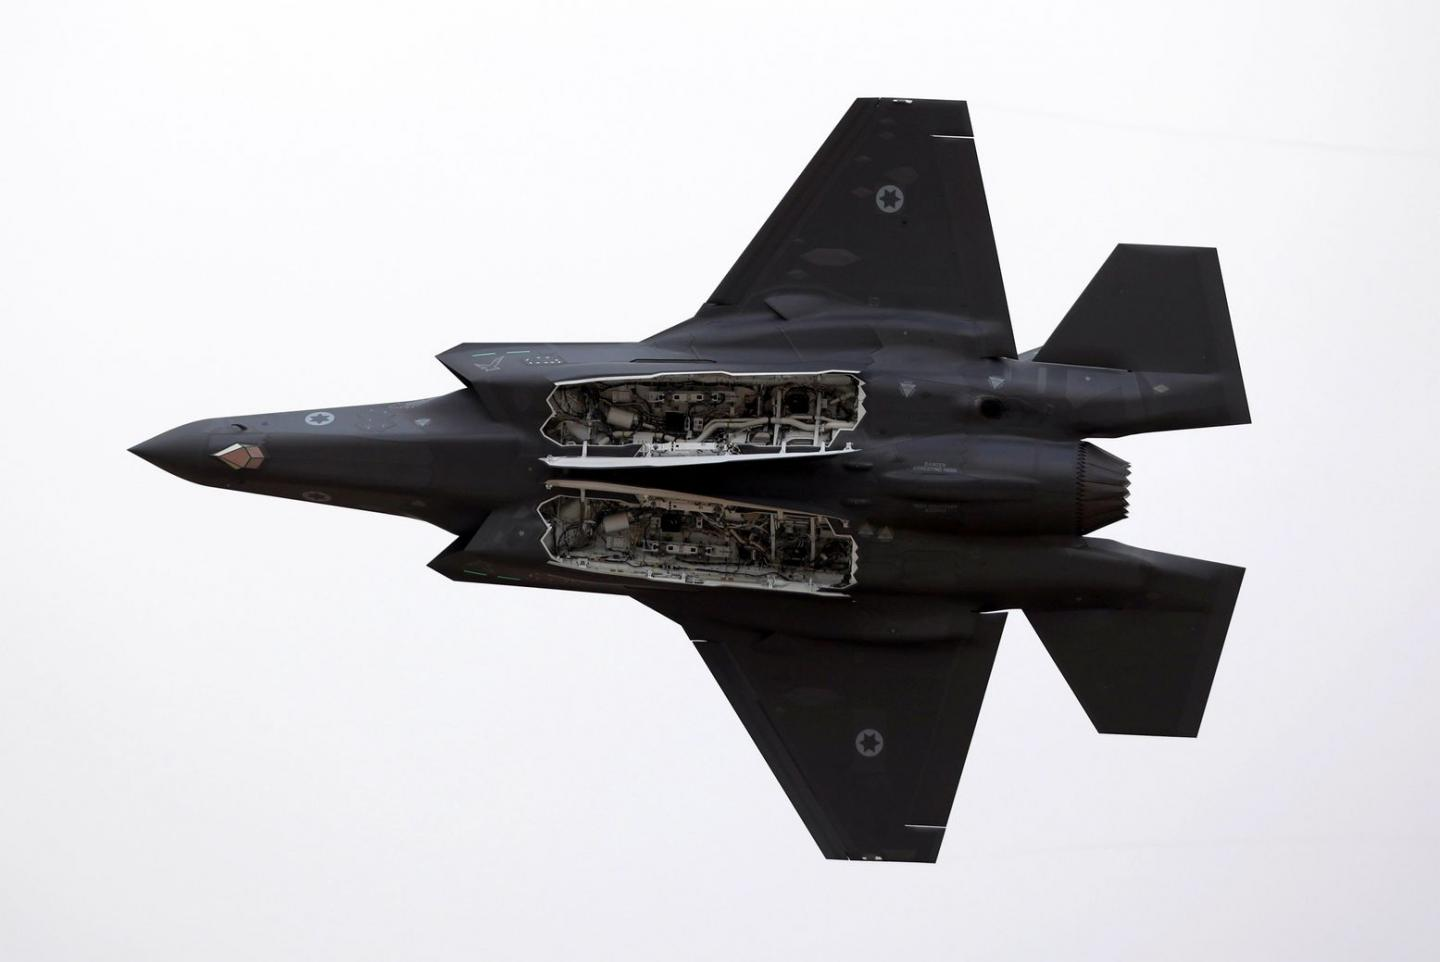 History Made: Last Year, Israels F-35 Were First Ever to a Launch Attack